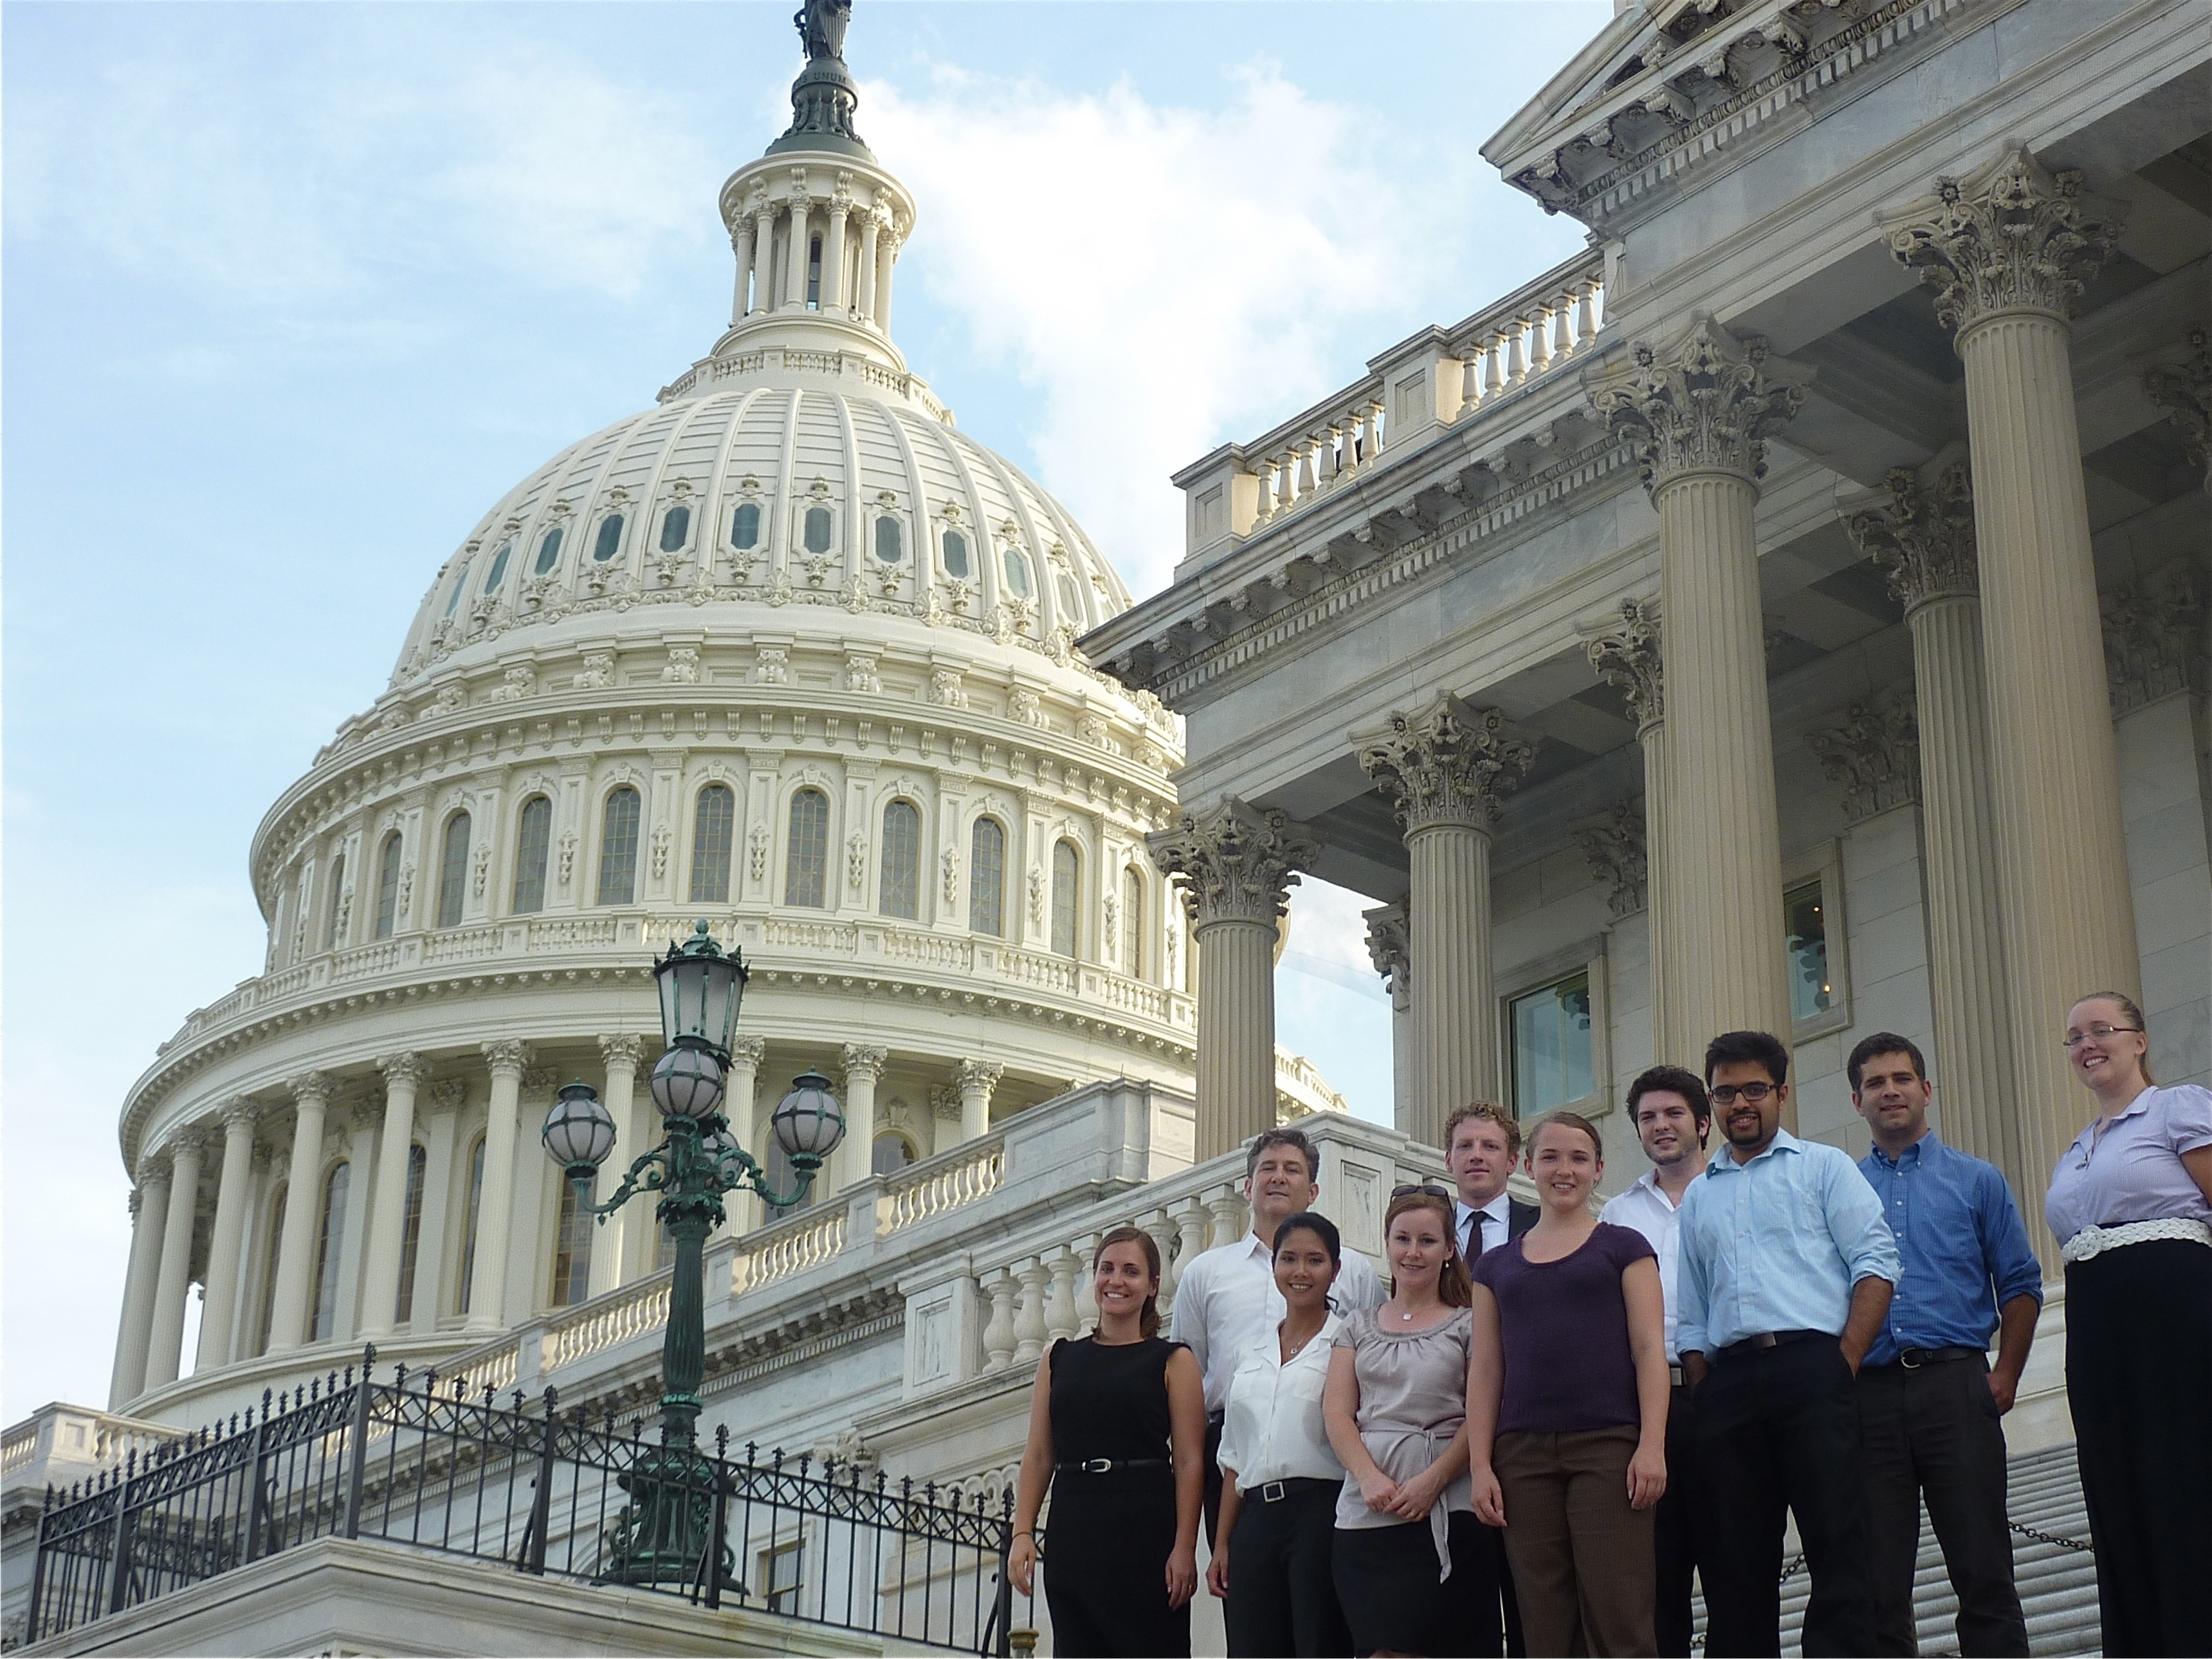 Professor Kate Weaver's class visits the nation's capitol building